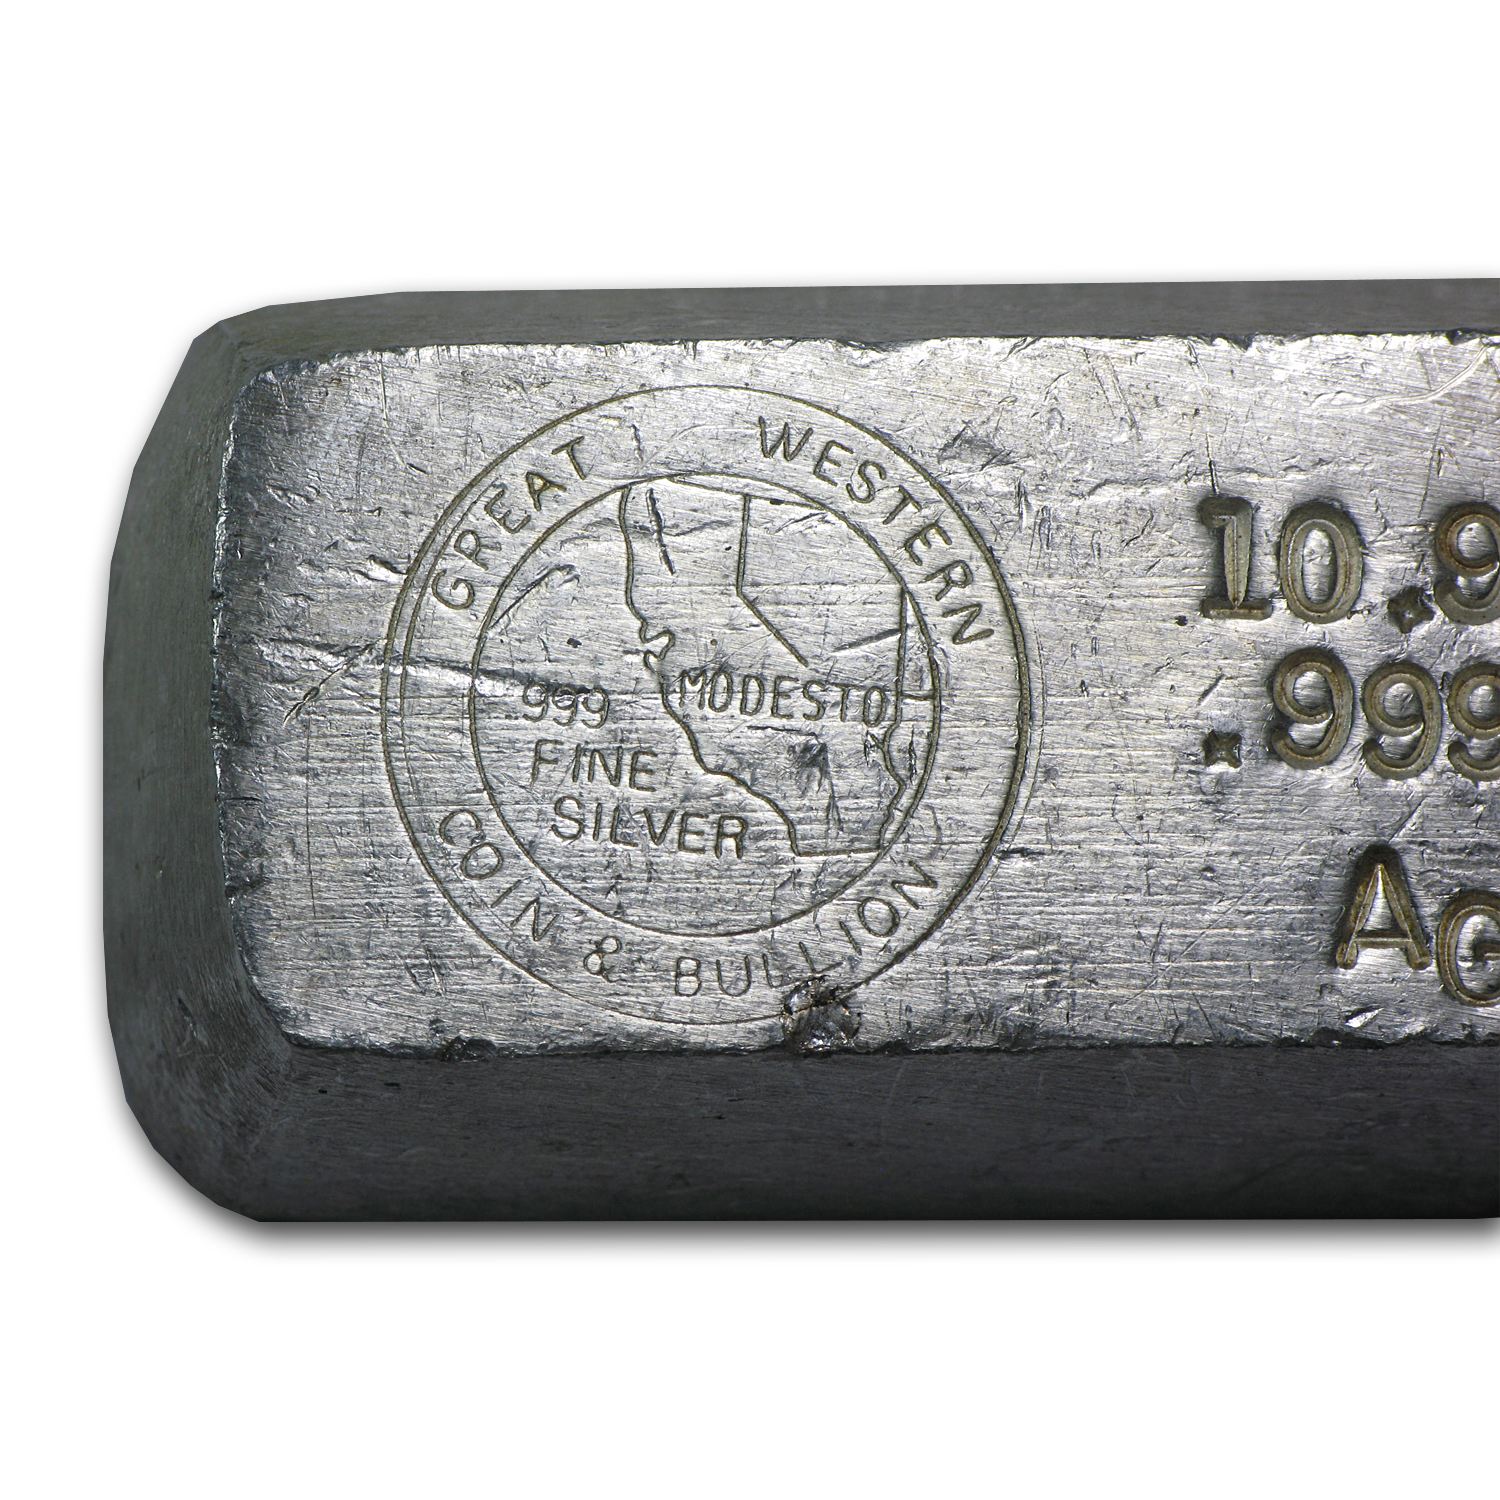 10.93 oz Silver Bar - Great Western Coin & Bullion